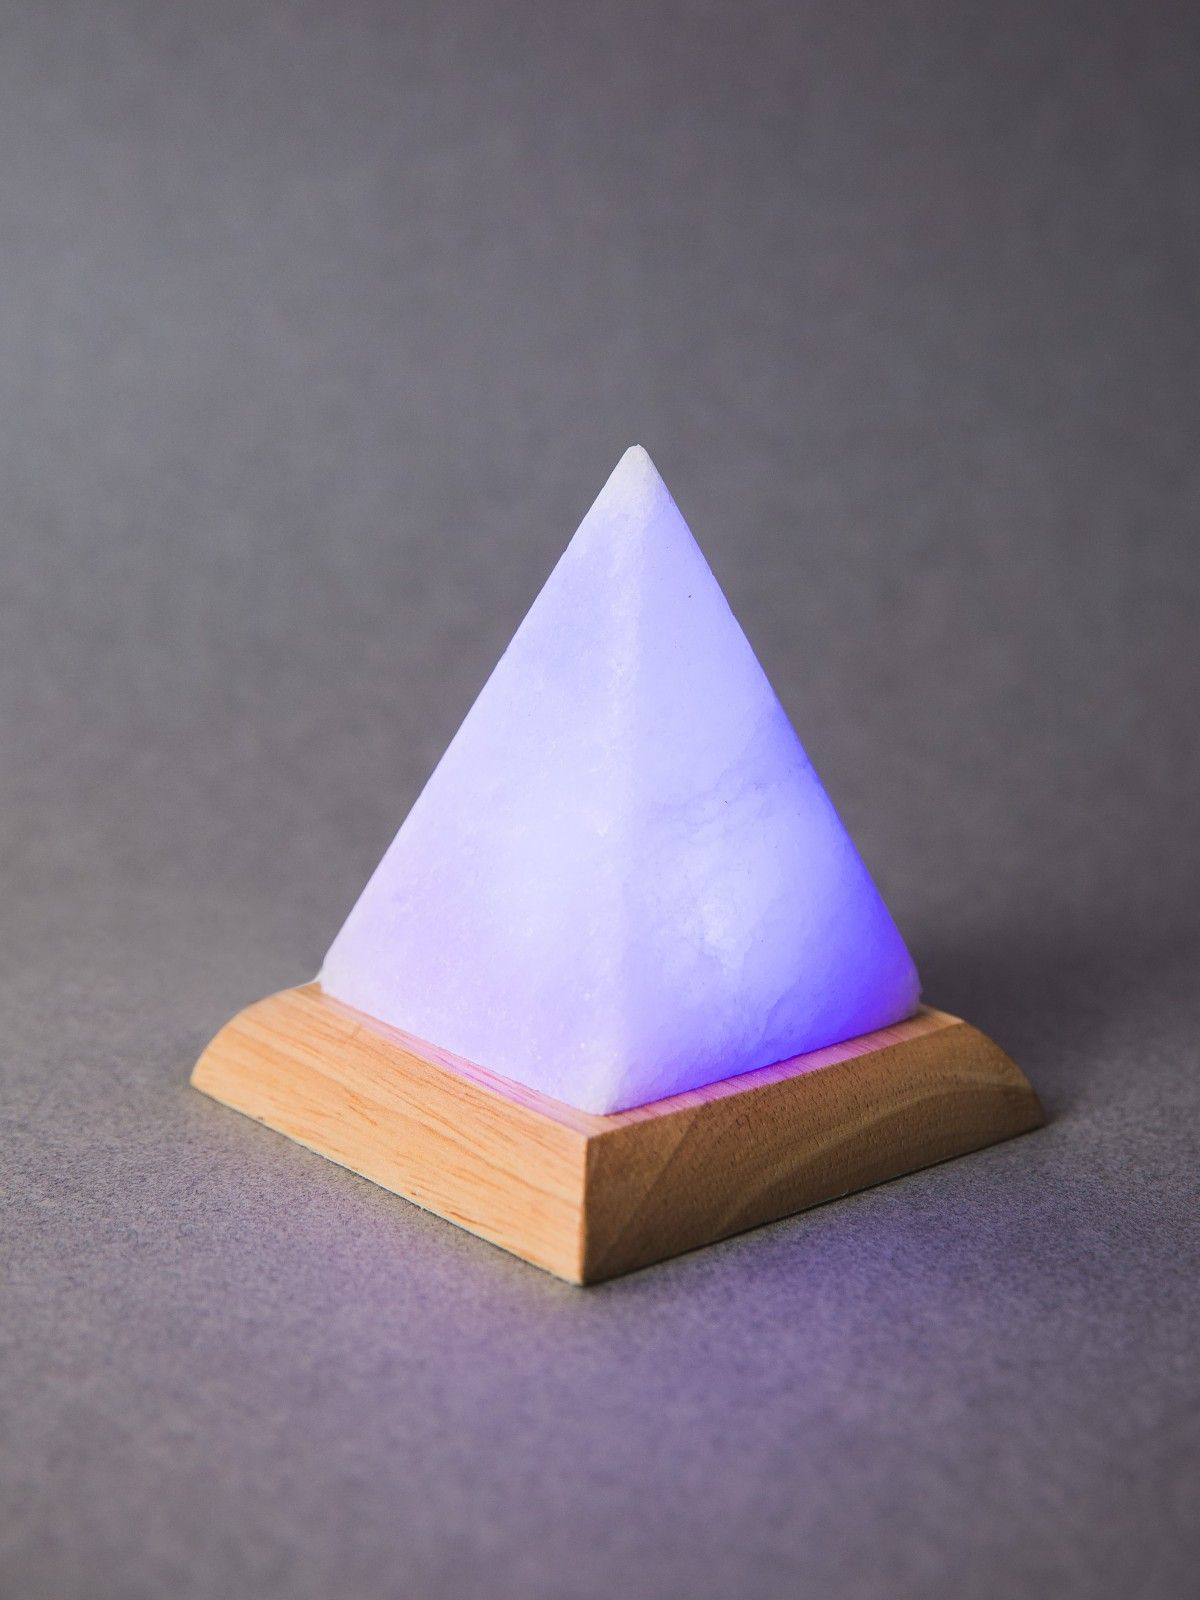 Mini Usb Powered Himalayan Salt Stone Lamp Pyramid White With